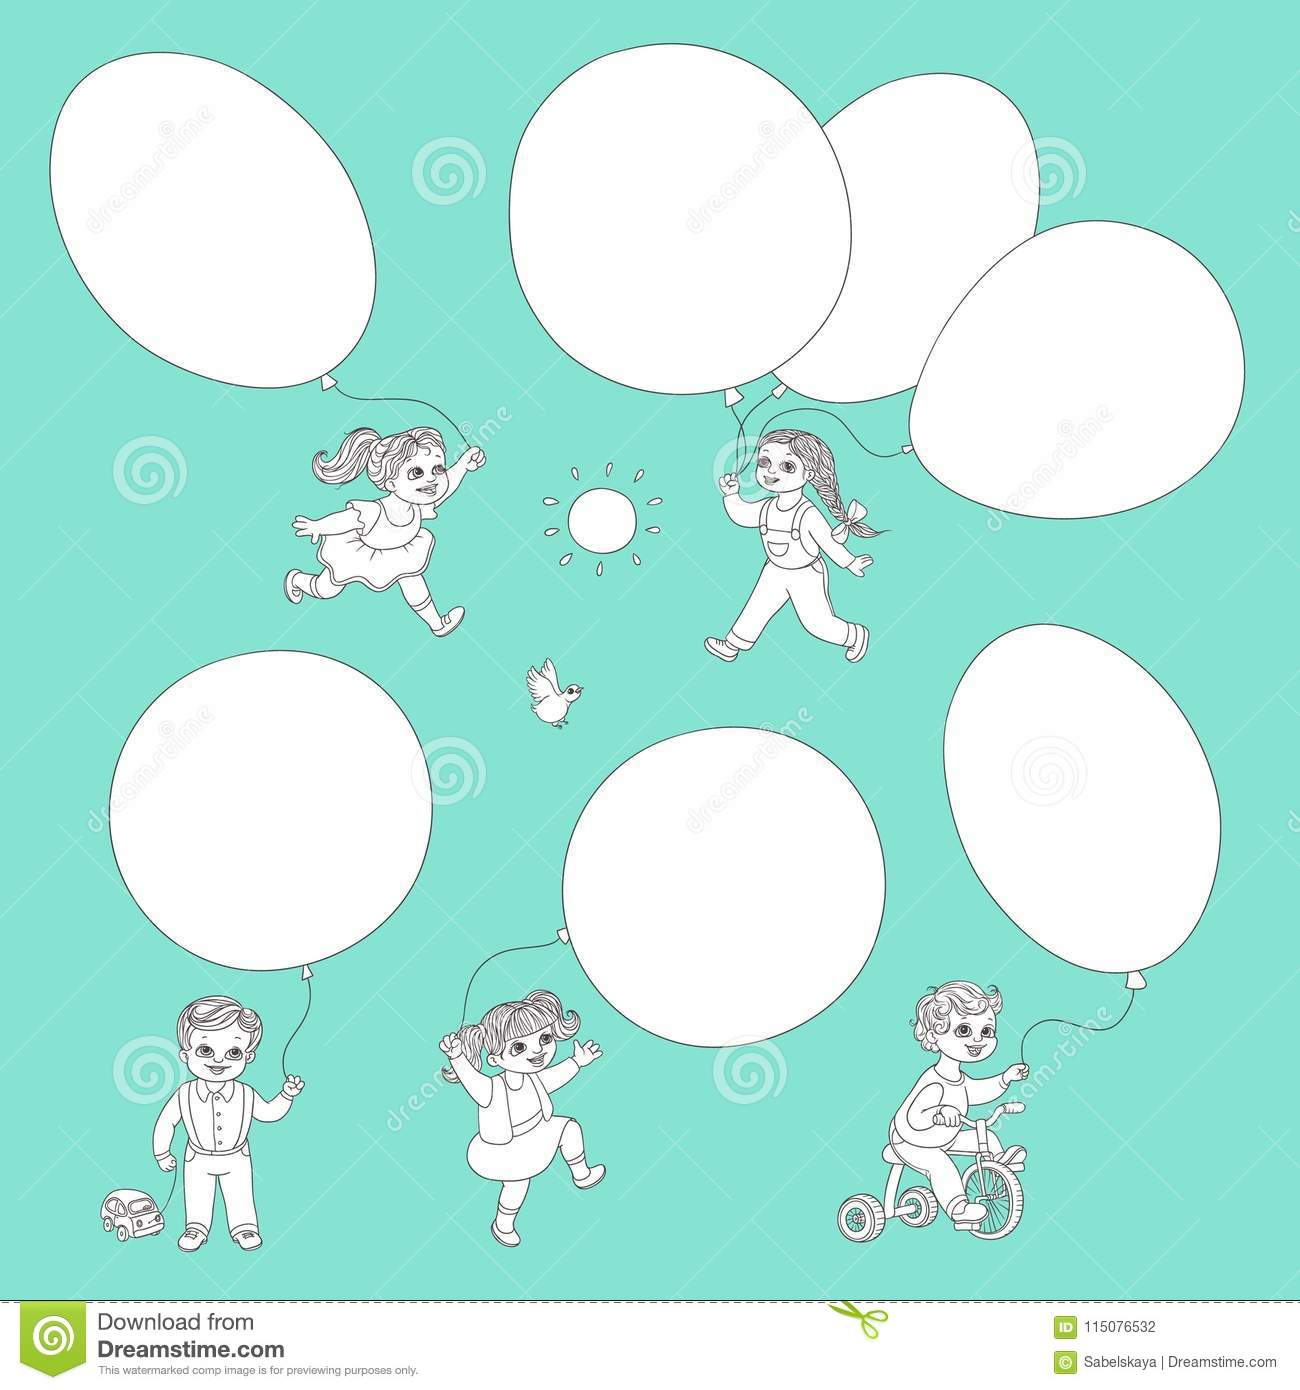 413eafd50 Vector flat sketch little girls, boys child and big air balloons in summer  clothing smiling. Happy female, male kid characters celebration party  coloring ...